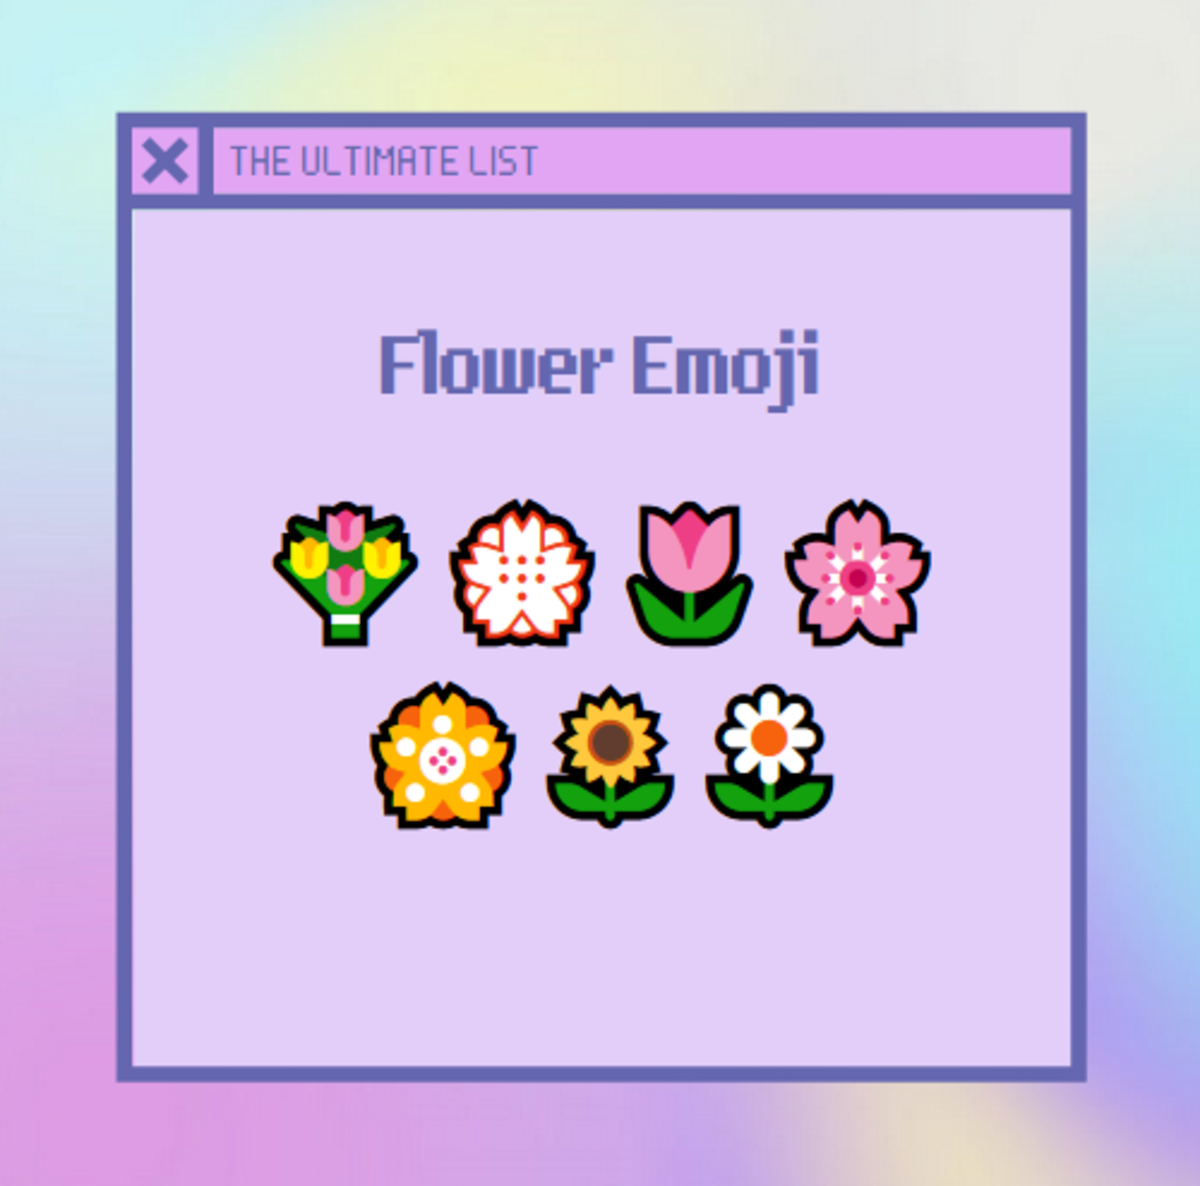 Here are some super cute examples of flower emoji!